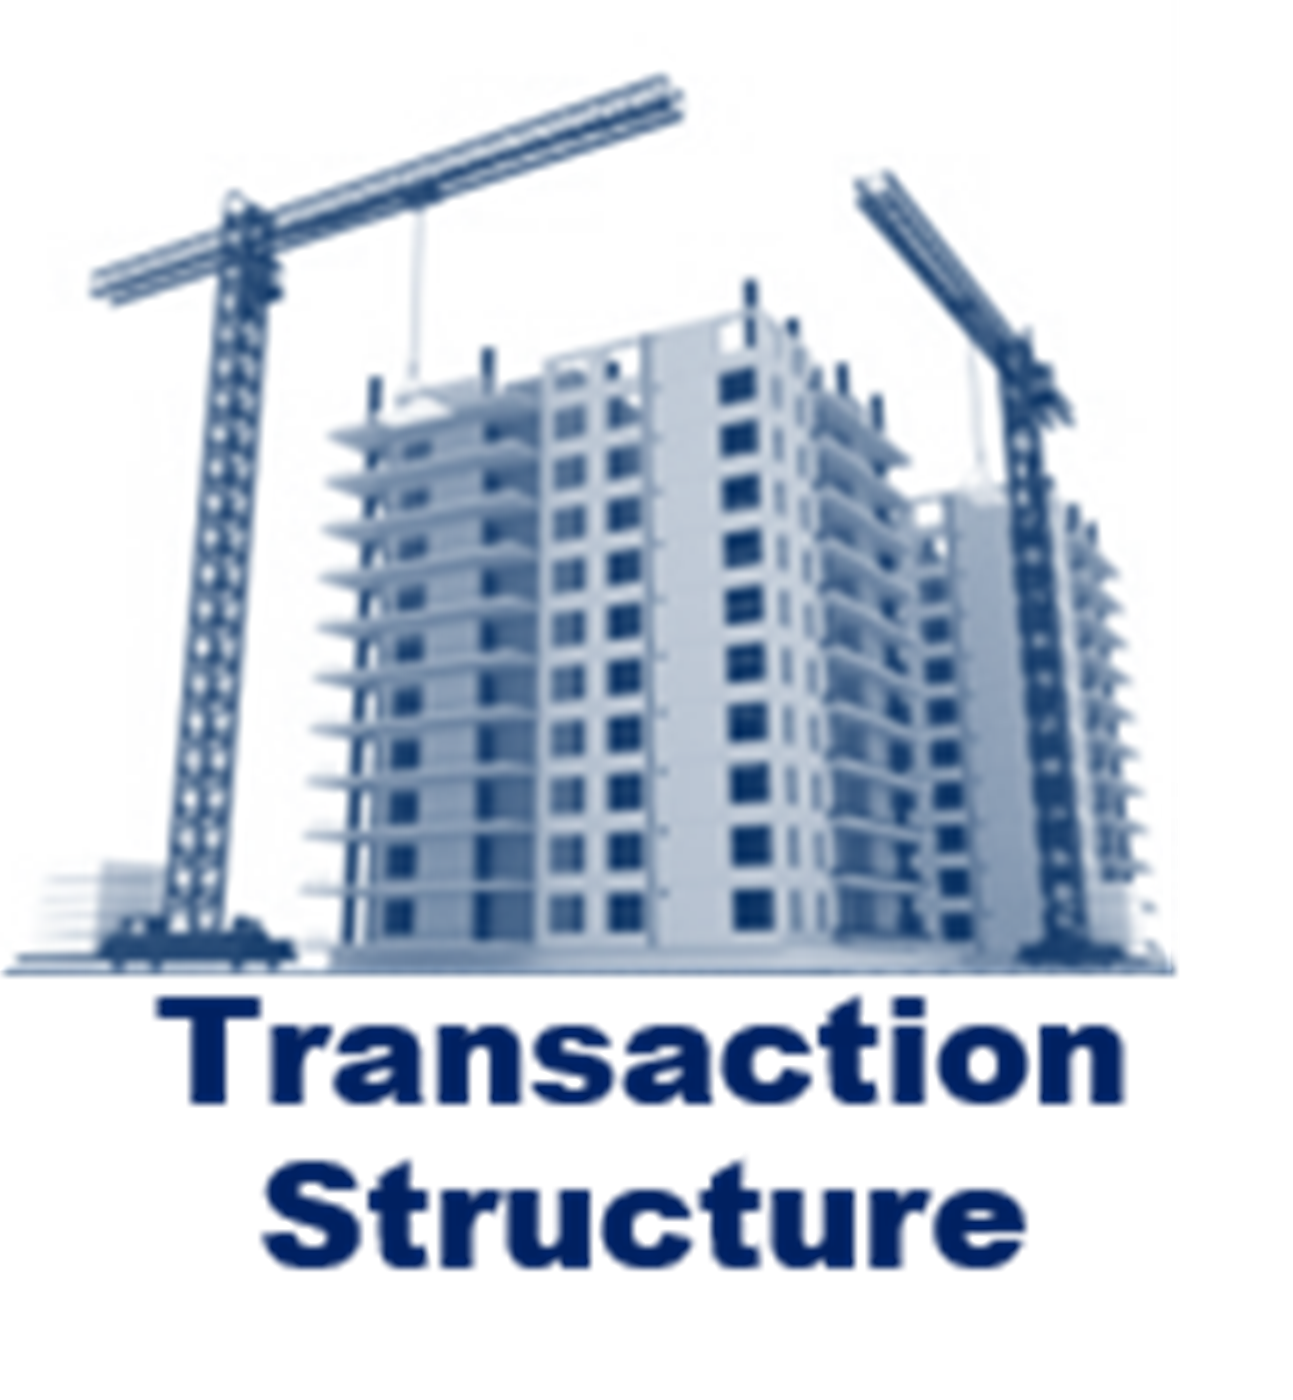 Deal Structures Today: Asset Sales and Cash Sales